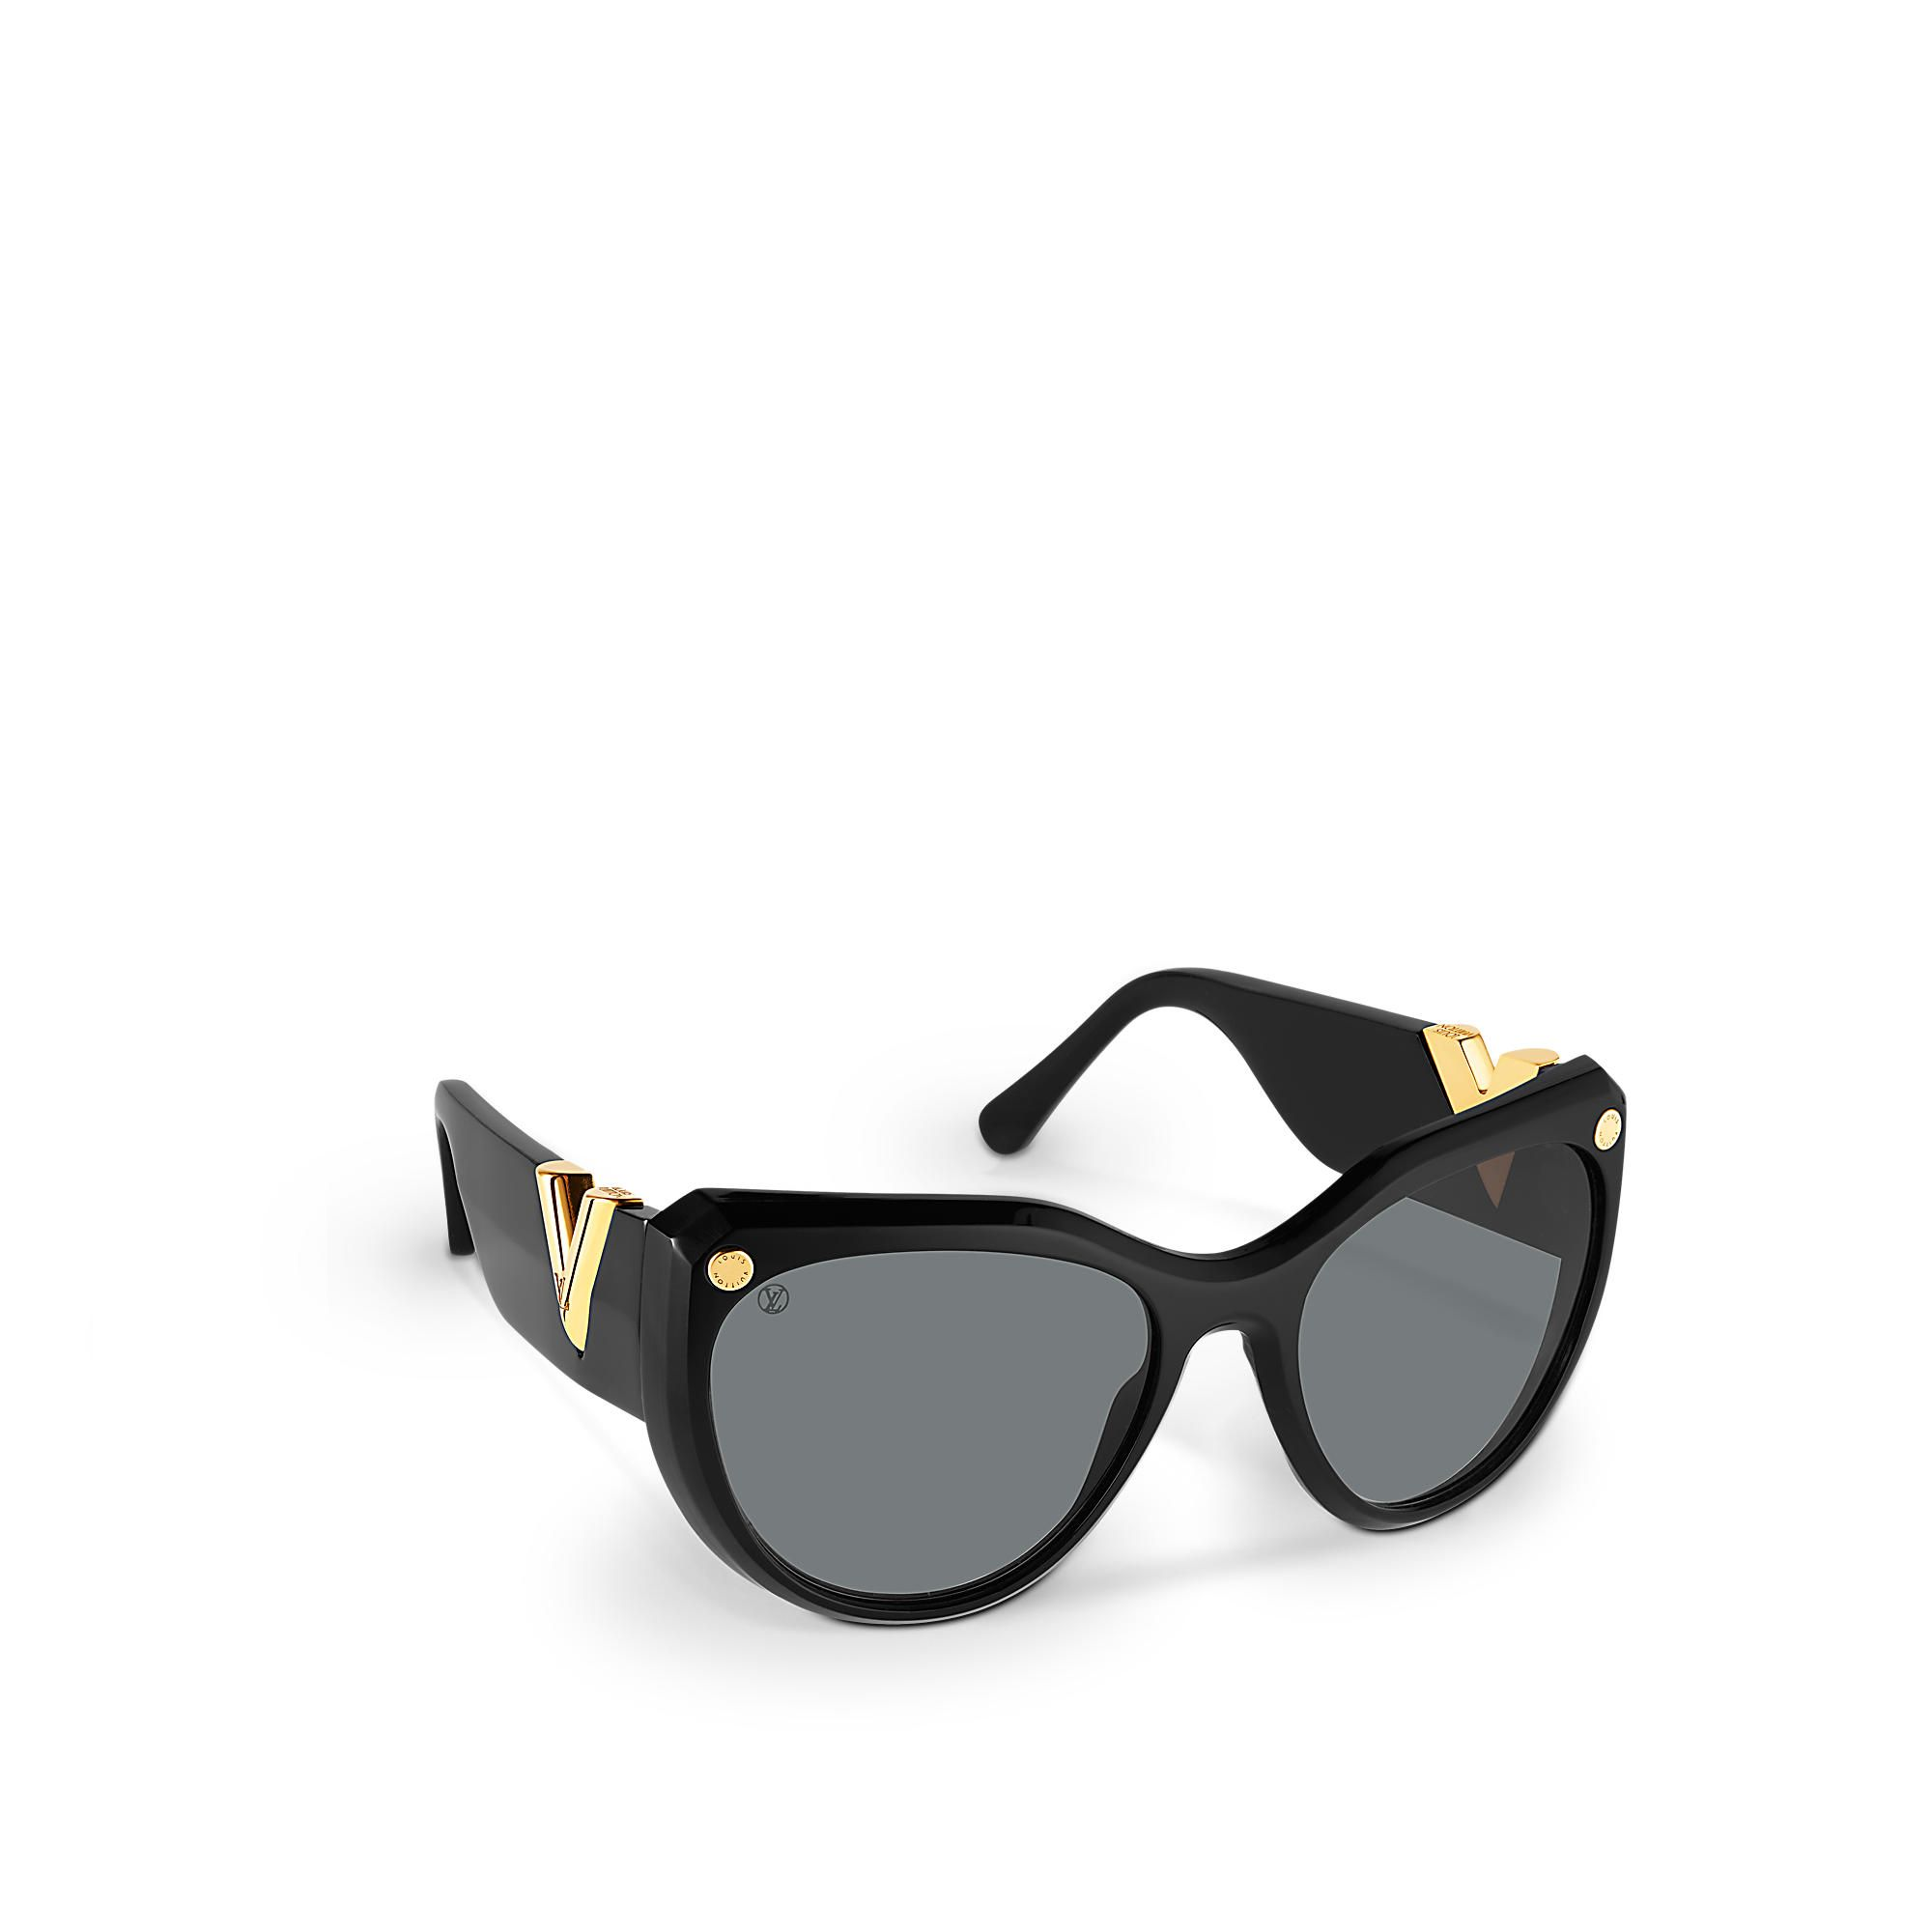 8c893120912 My Fair Lady via Louis Vuitton. My Fair Lady via Louis Vuitton Sunglasses  Accessories ...